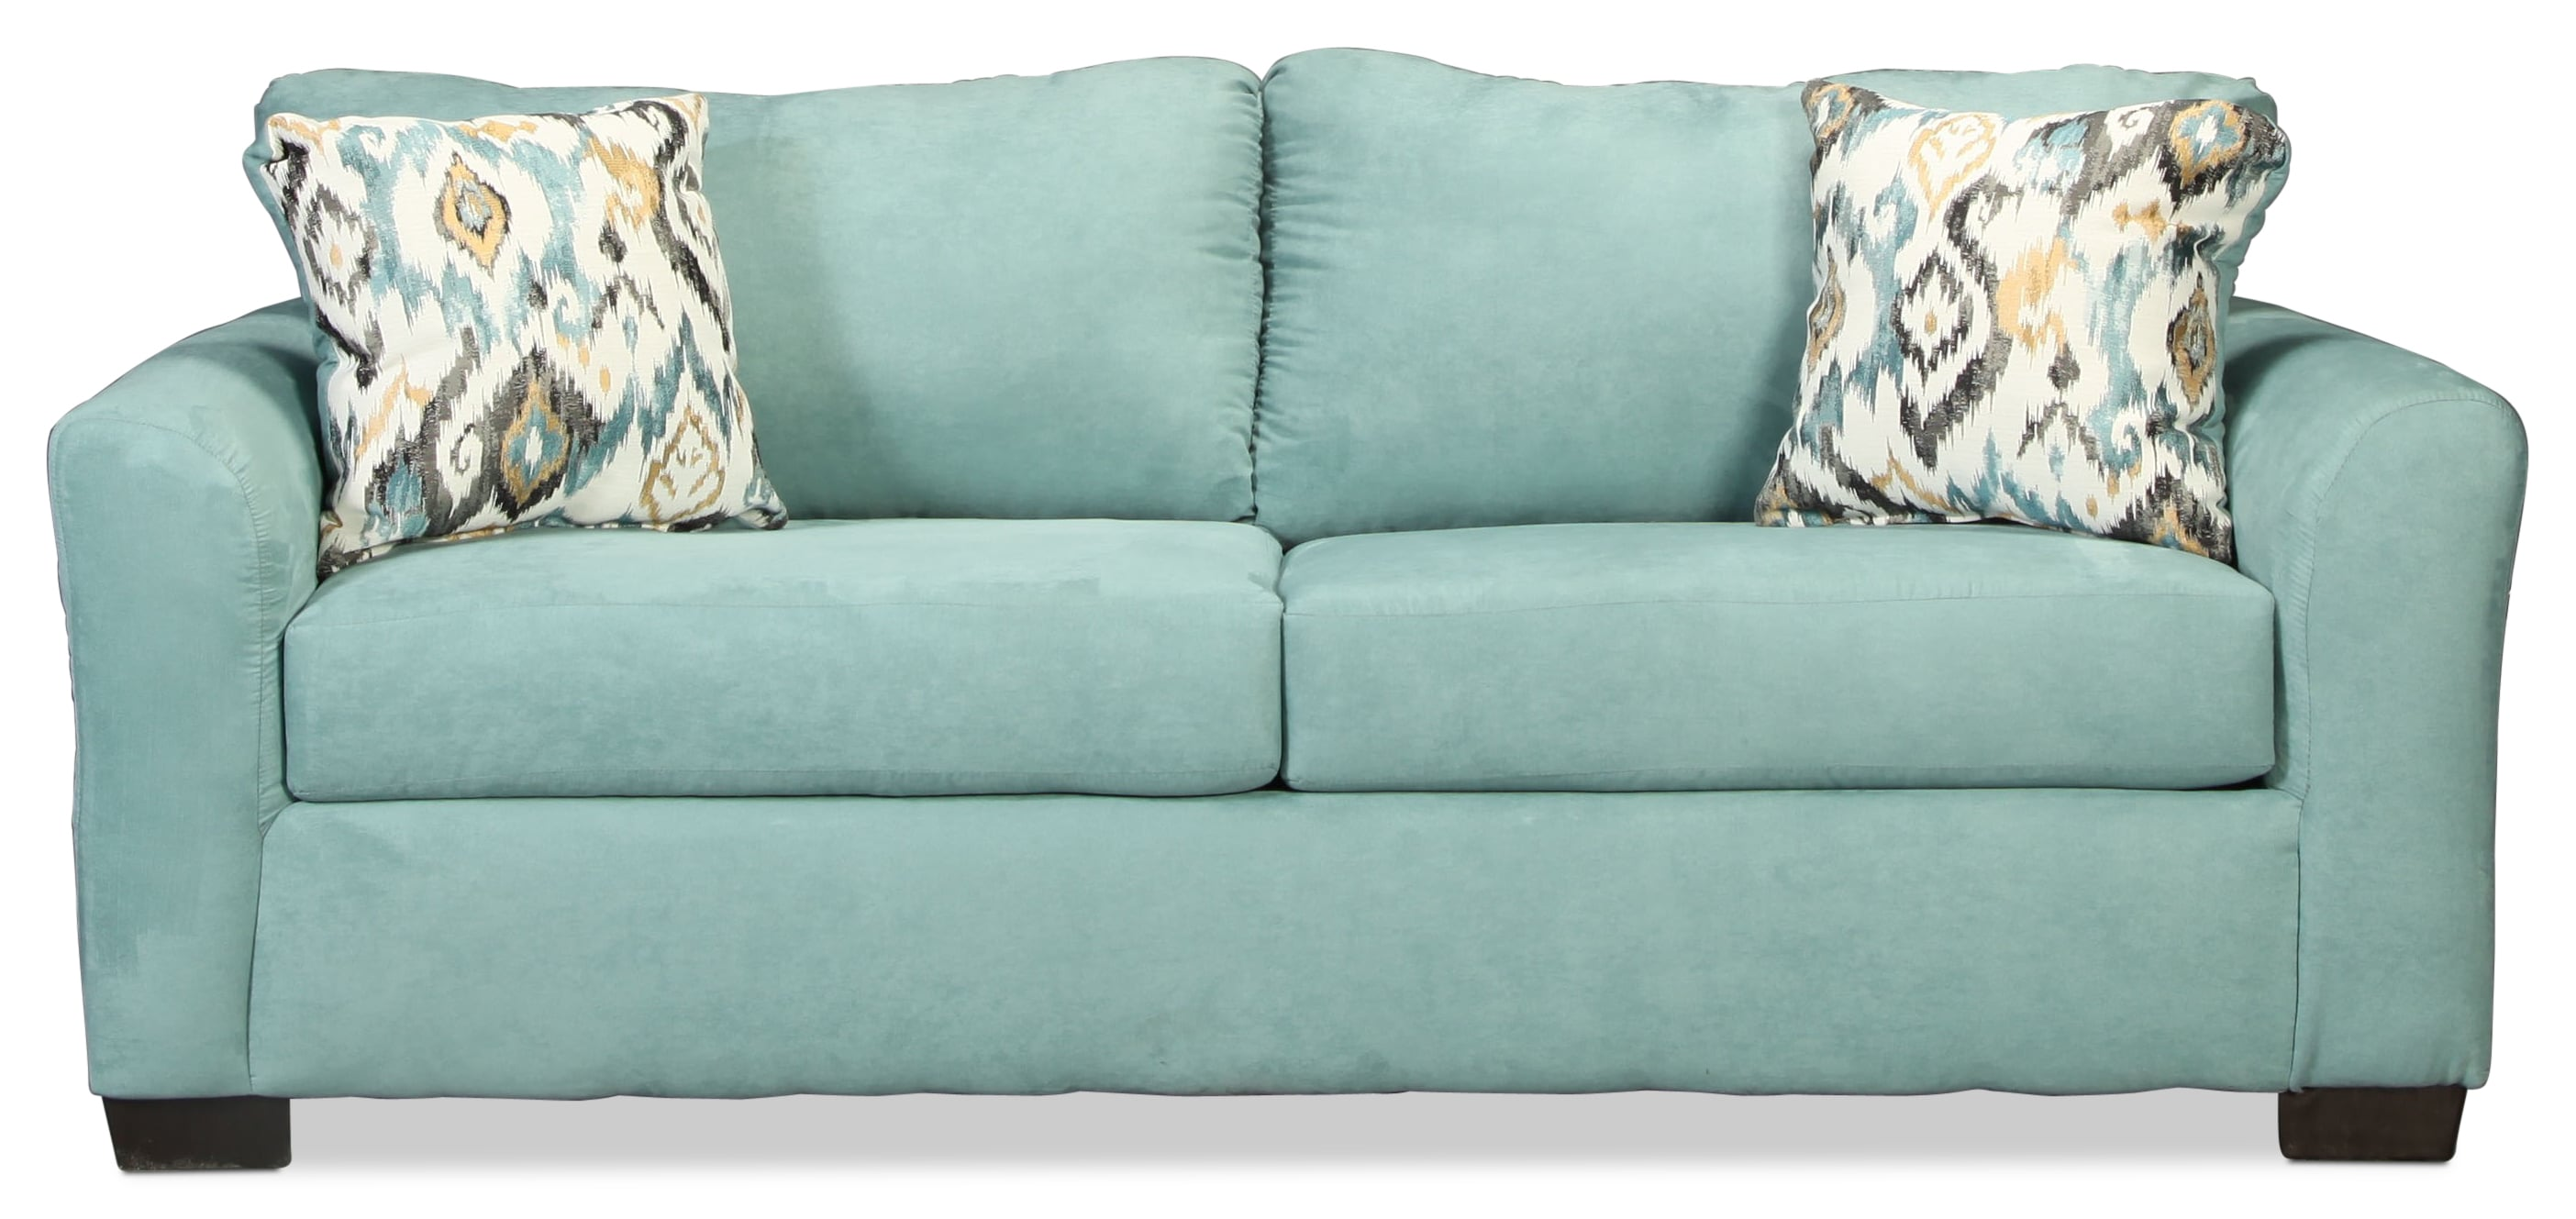 Capri Sofa - Light Blue